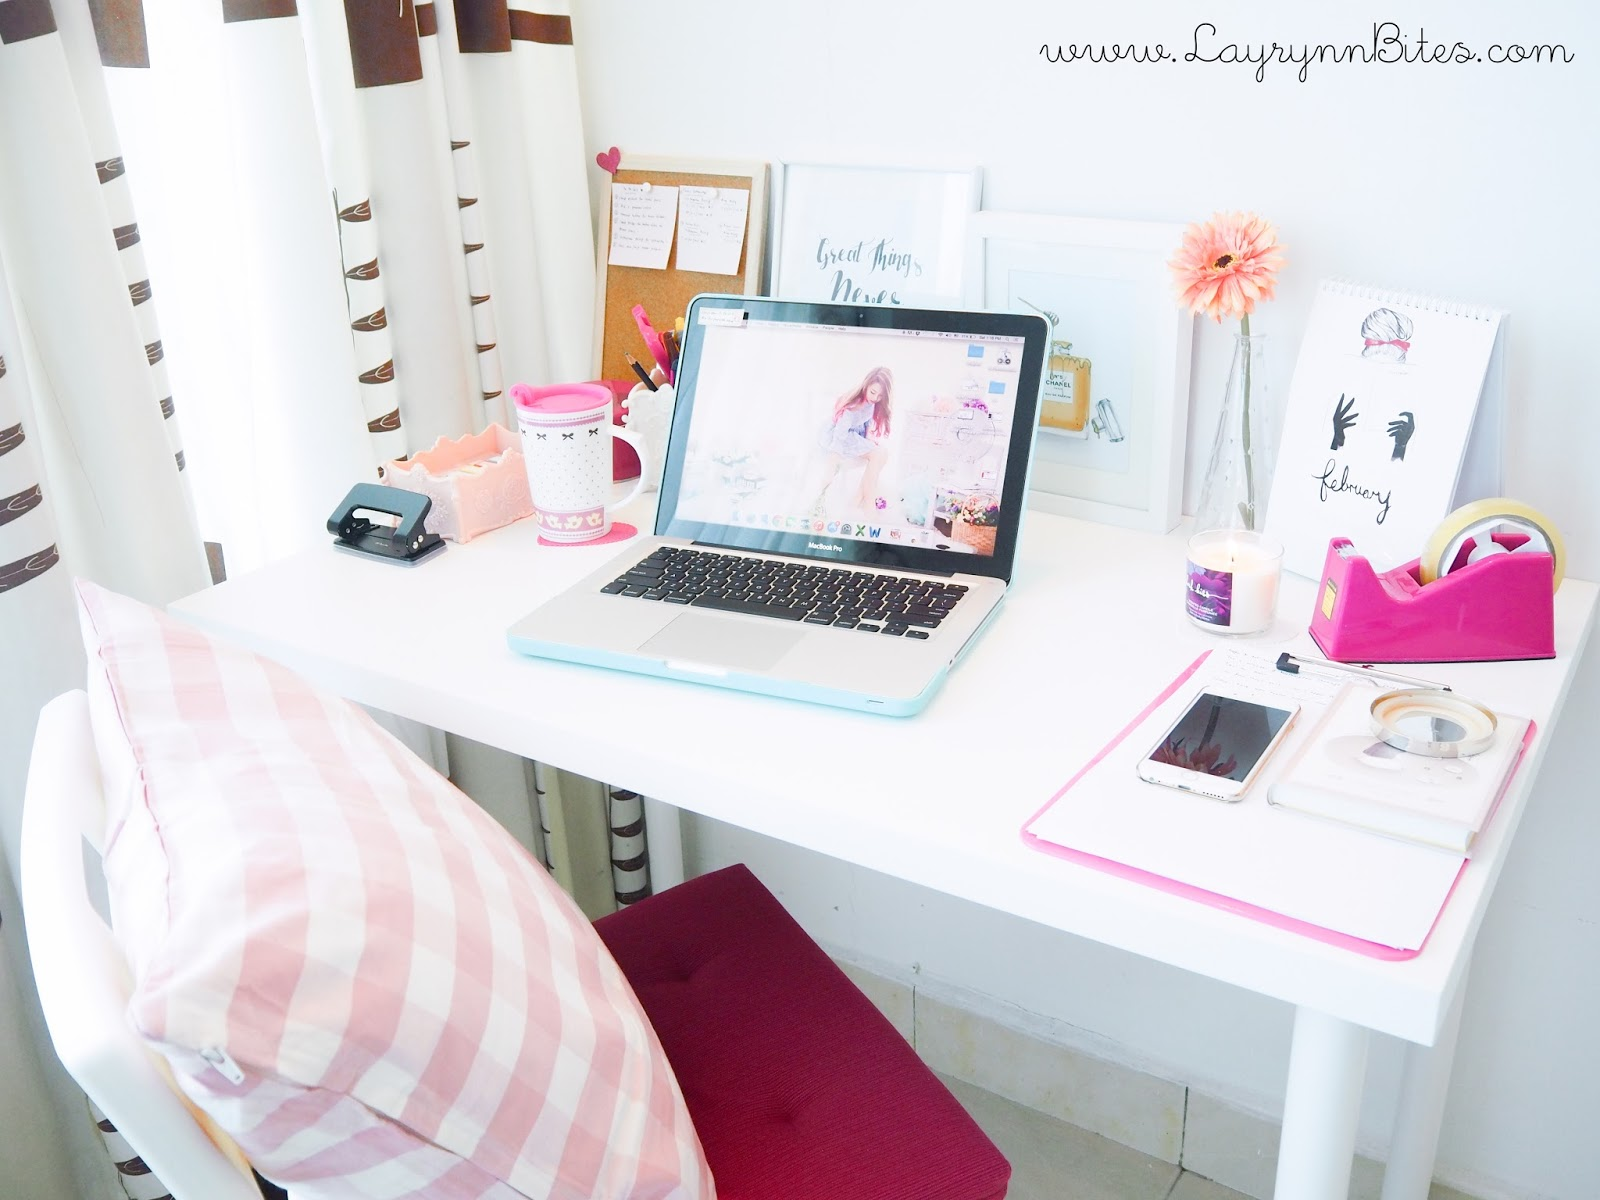 MY DESK TOUR 2015 CARMEN LAYRYNN